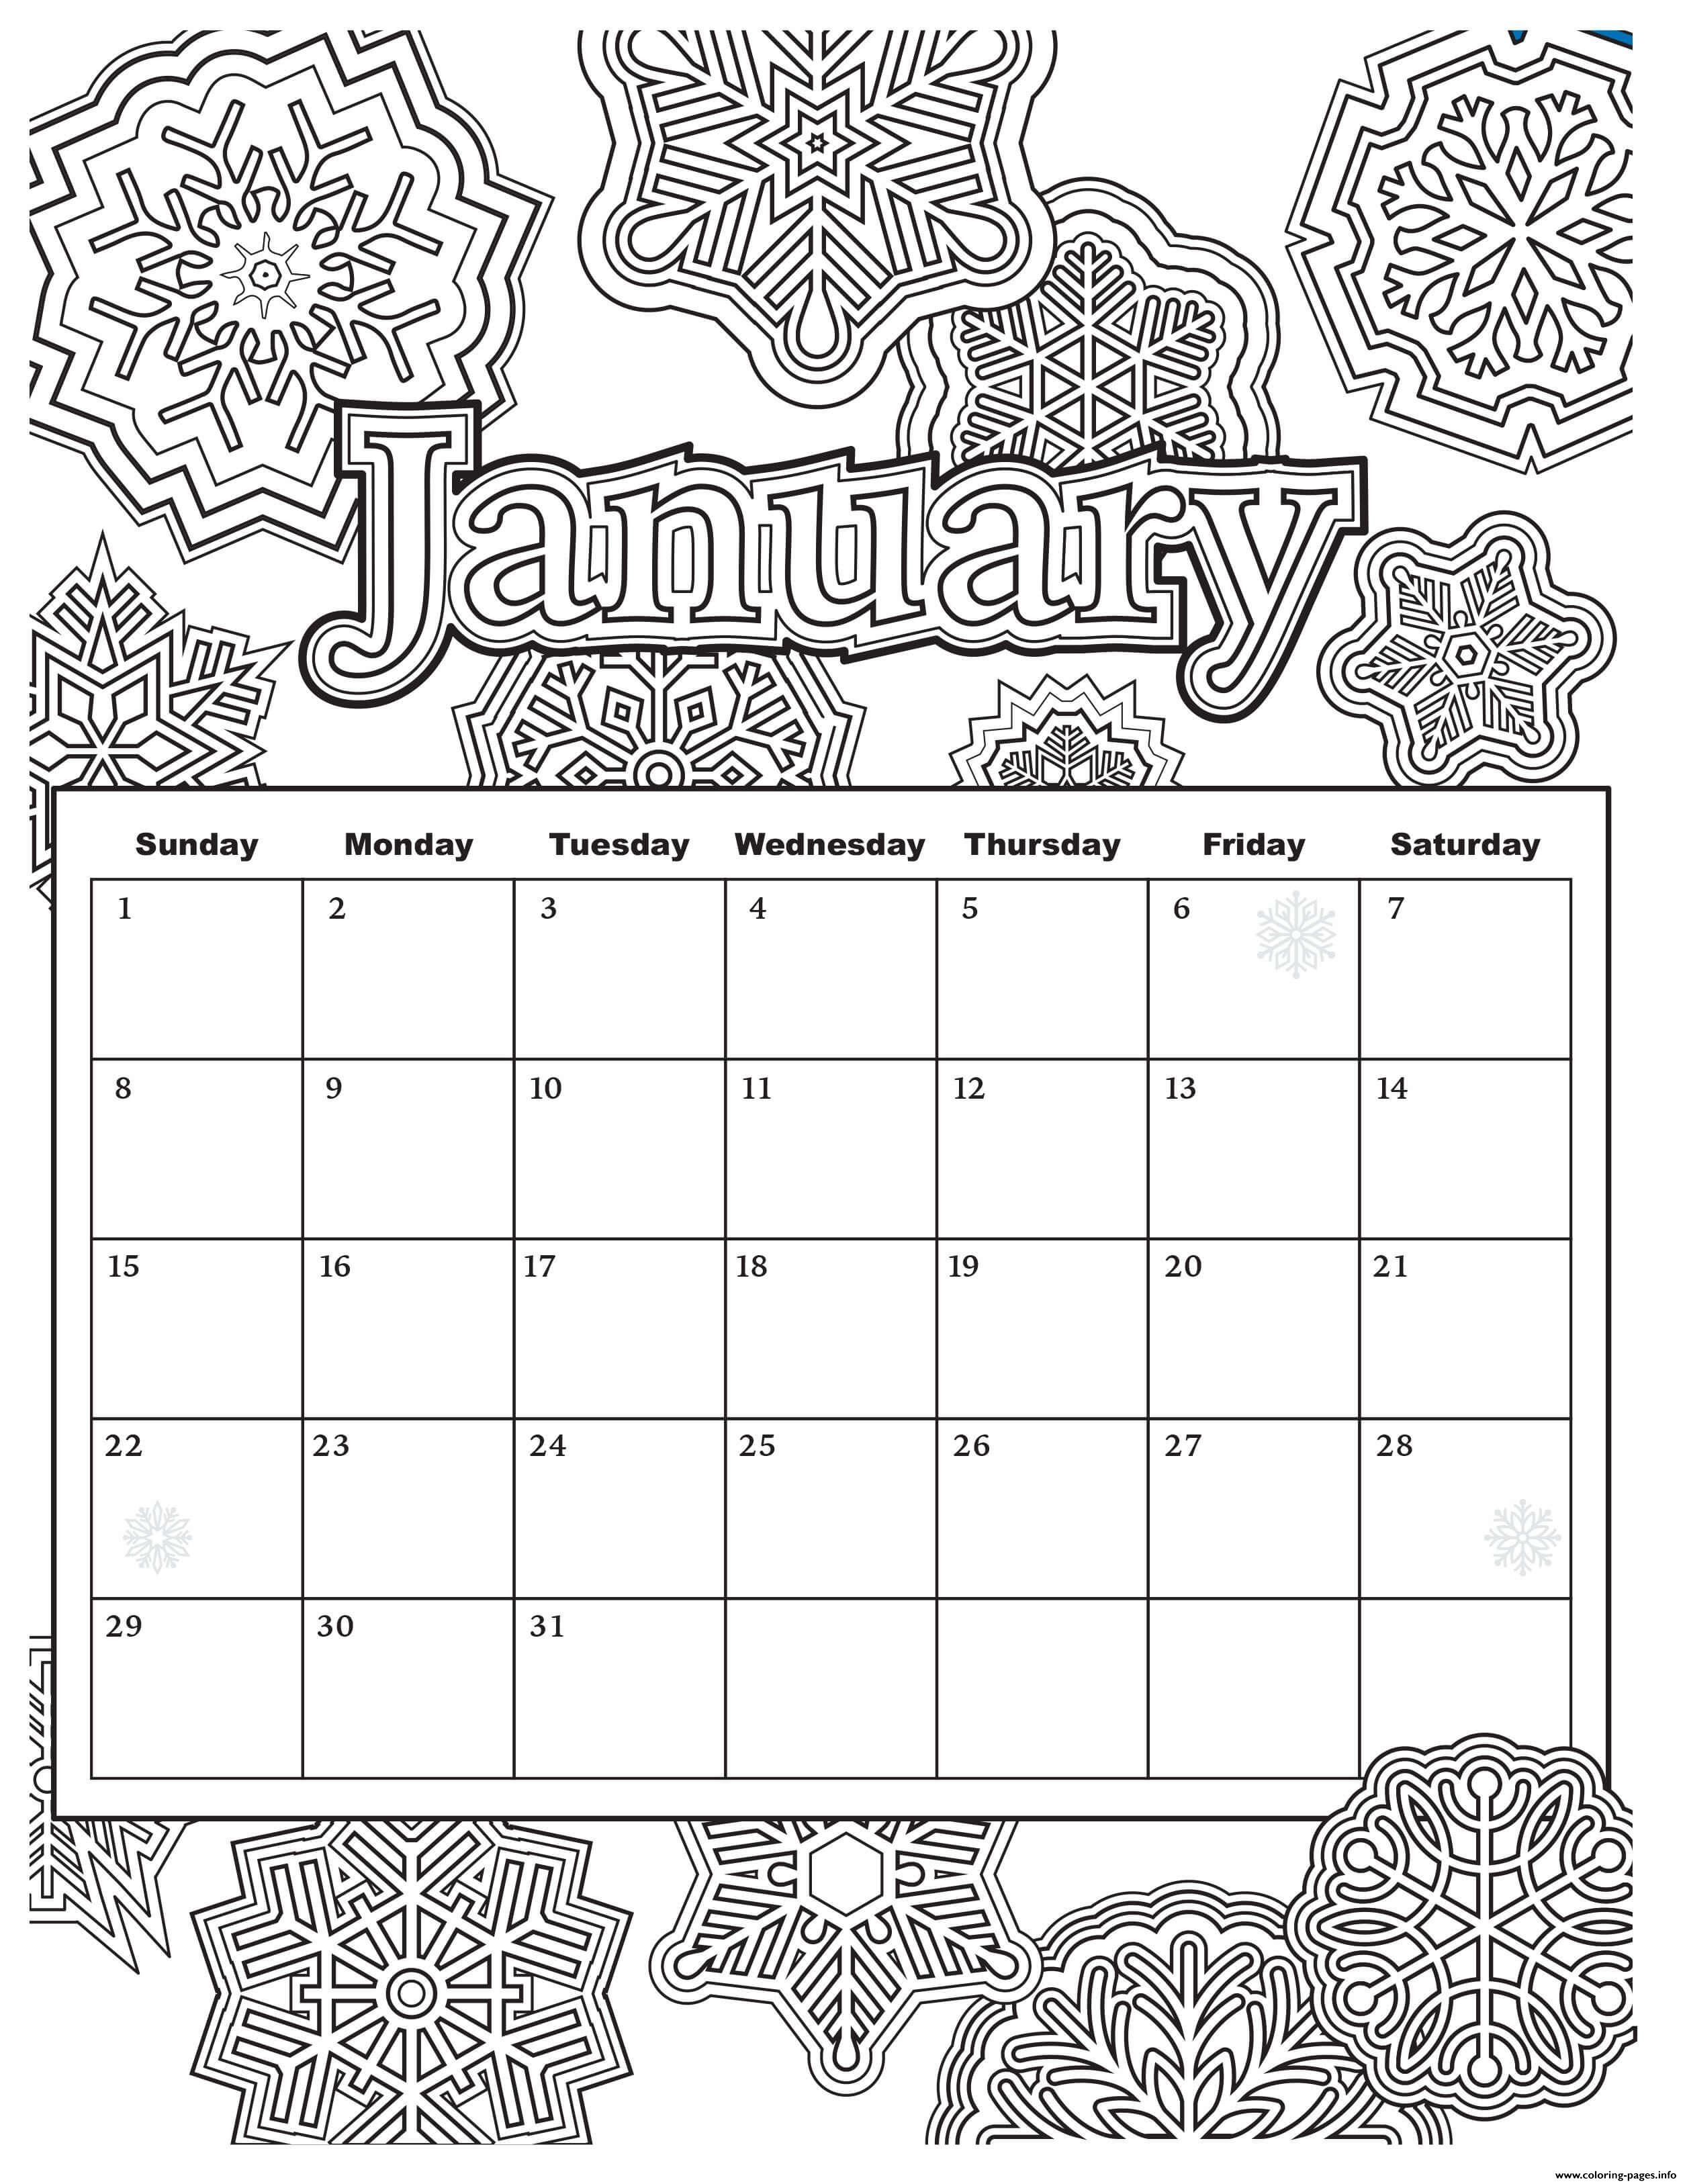 January Calendar Coloring Pages Printable